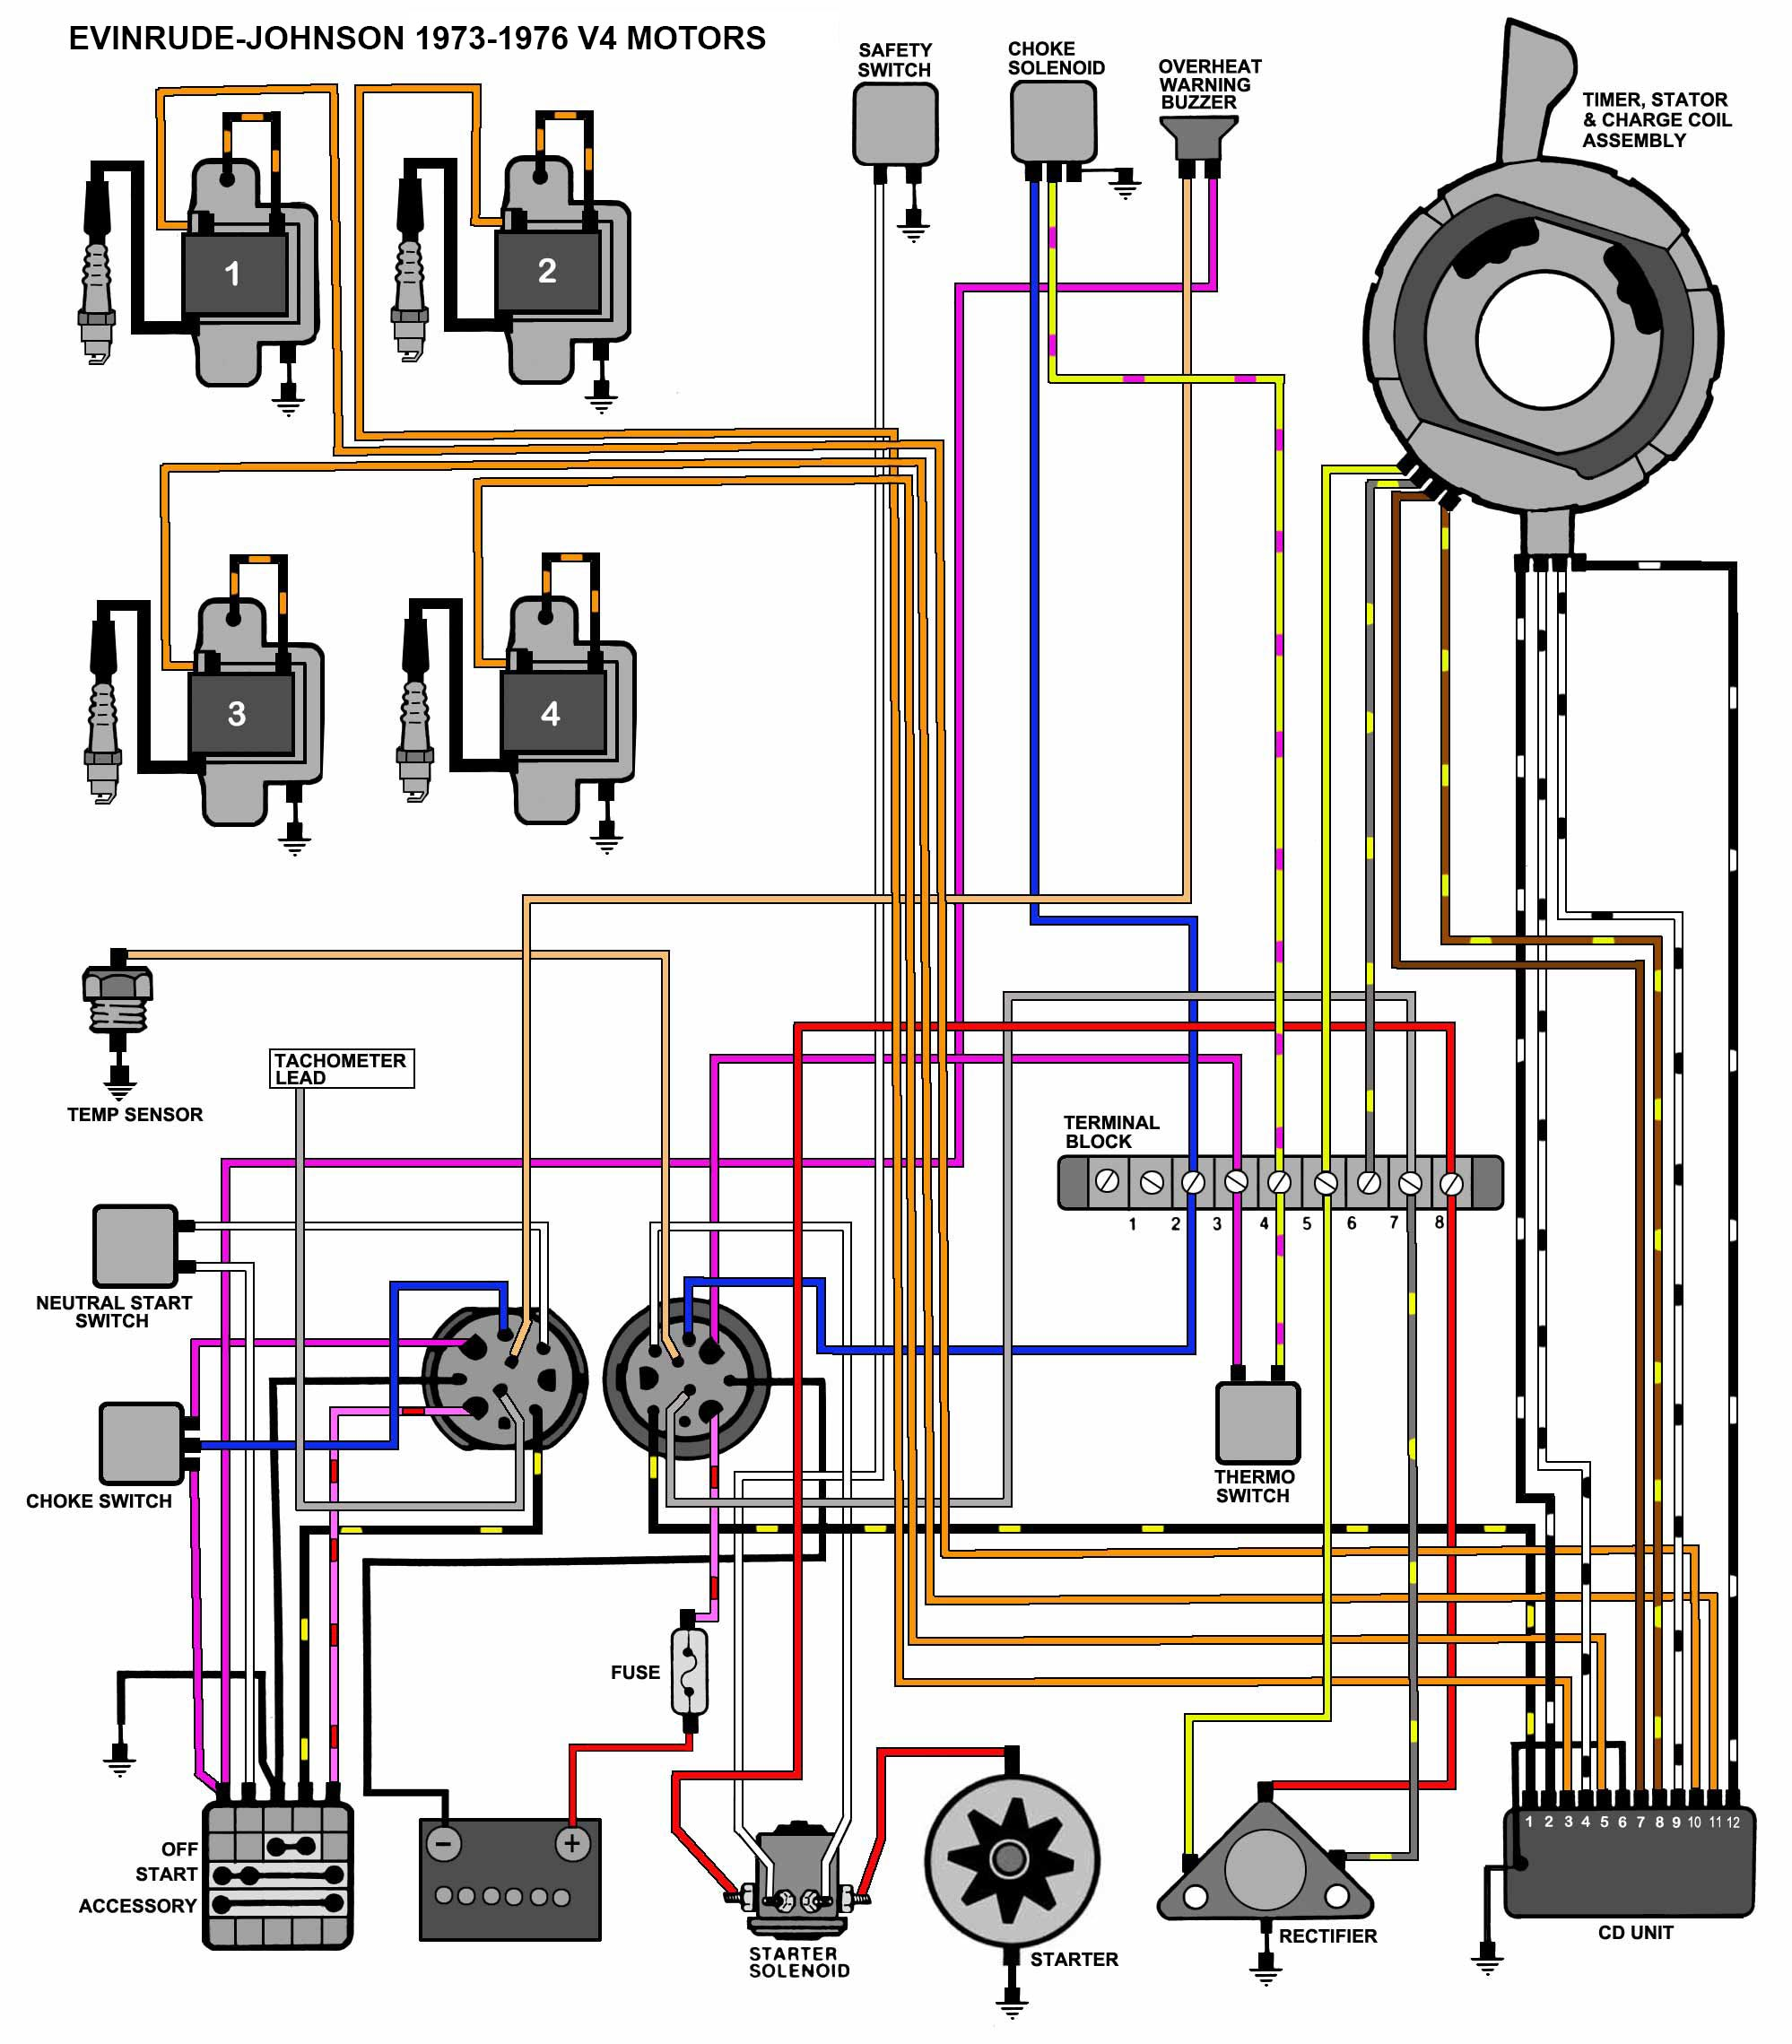 omc wire diagram mercury outboard wiring diagrams mastertech marin 93 Omc Wiring Diagram omc ignition switch wiring diagram omc image omc johnson ignition switch wiring all about repair and OMC Boat Wiring Diagrams Schematics